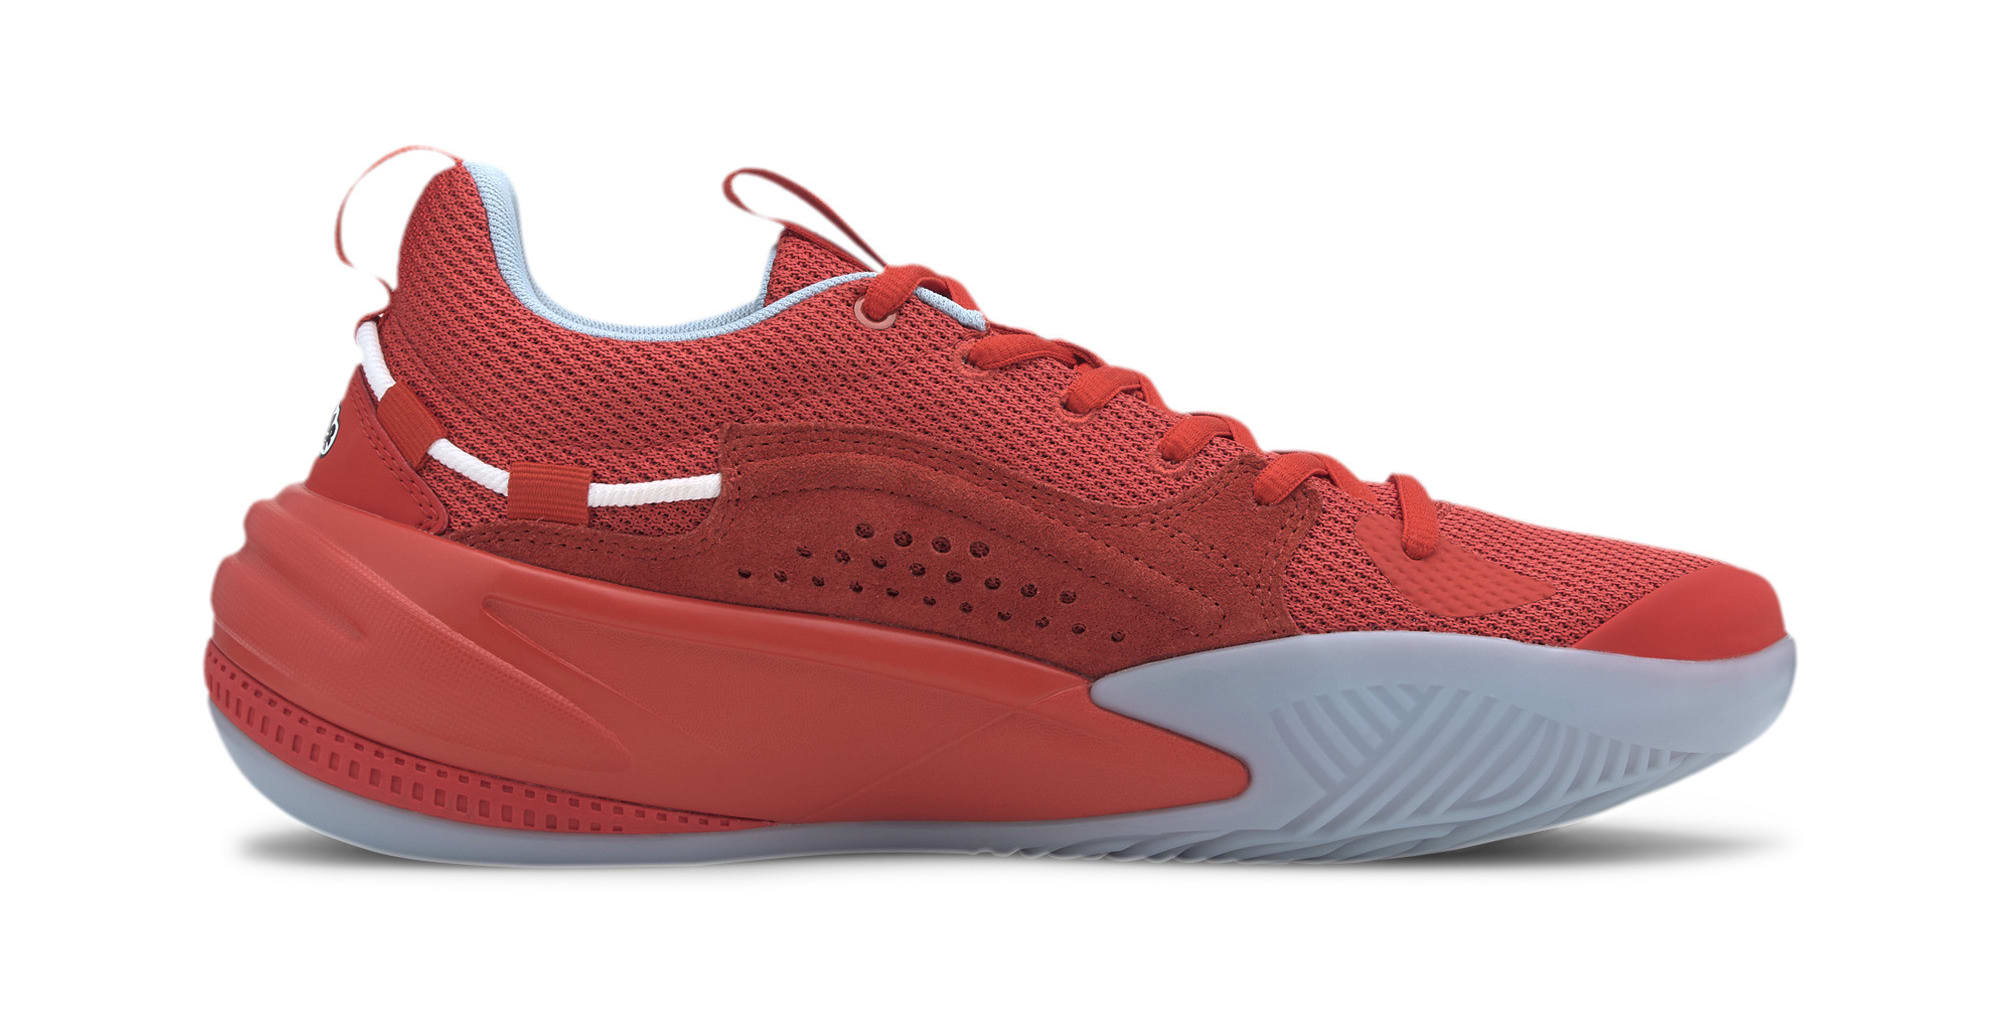 J. Cole Puma RS-Dreamer 'Blood, Sweat, and Tears' 194602-01 Medial